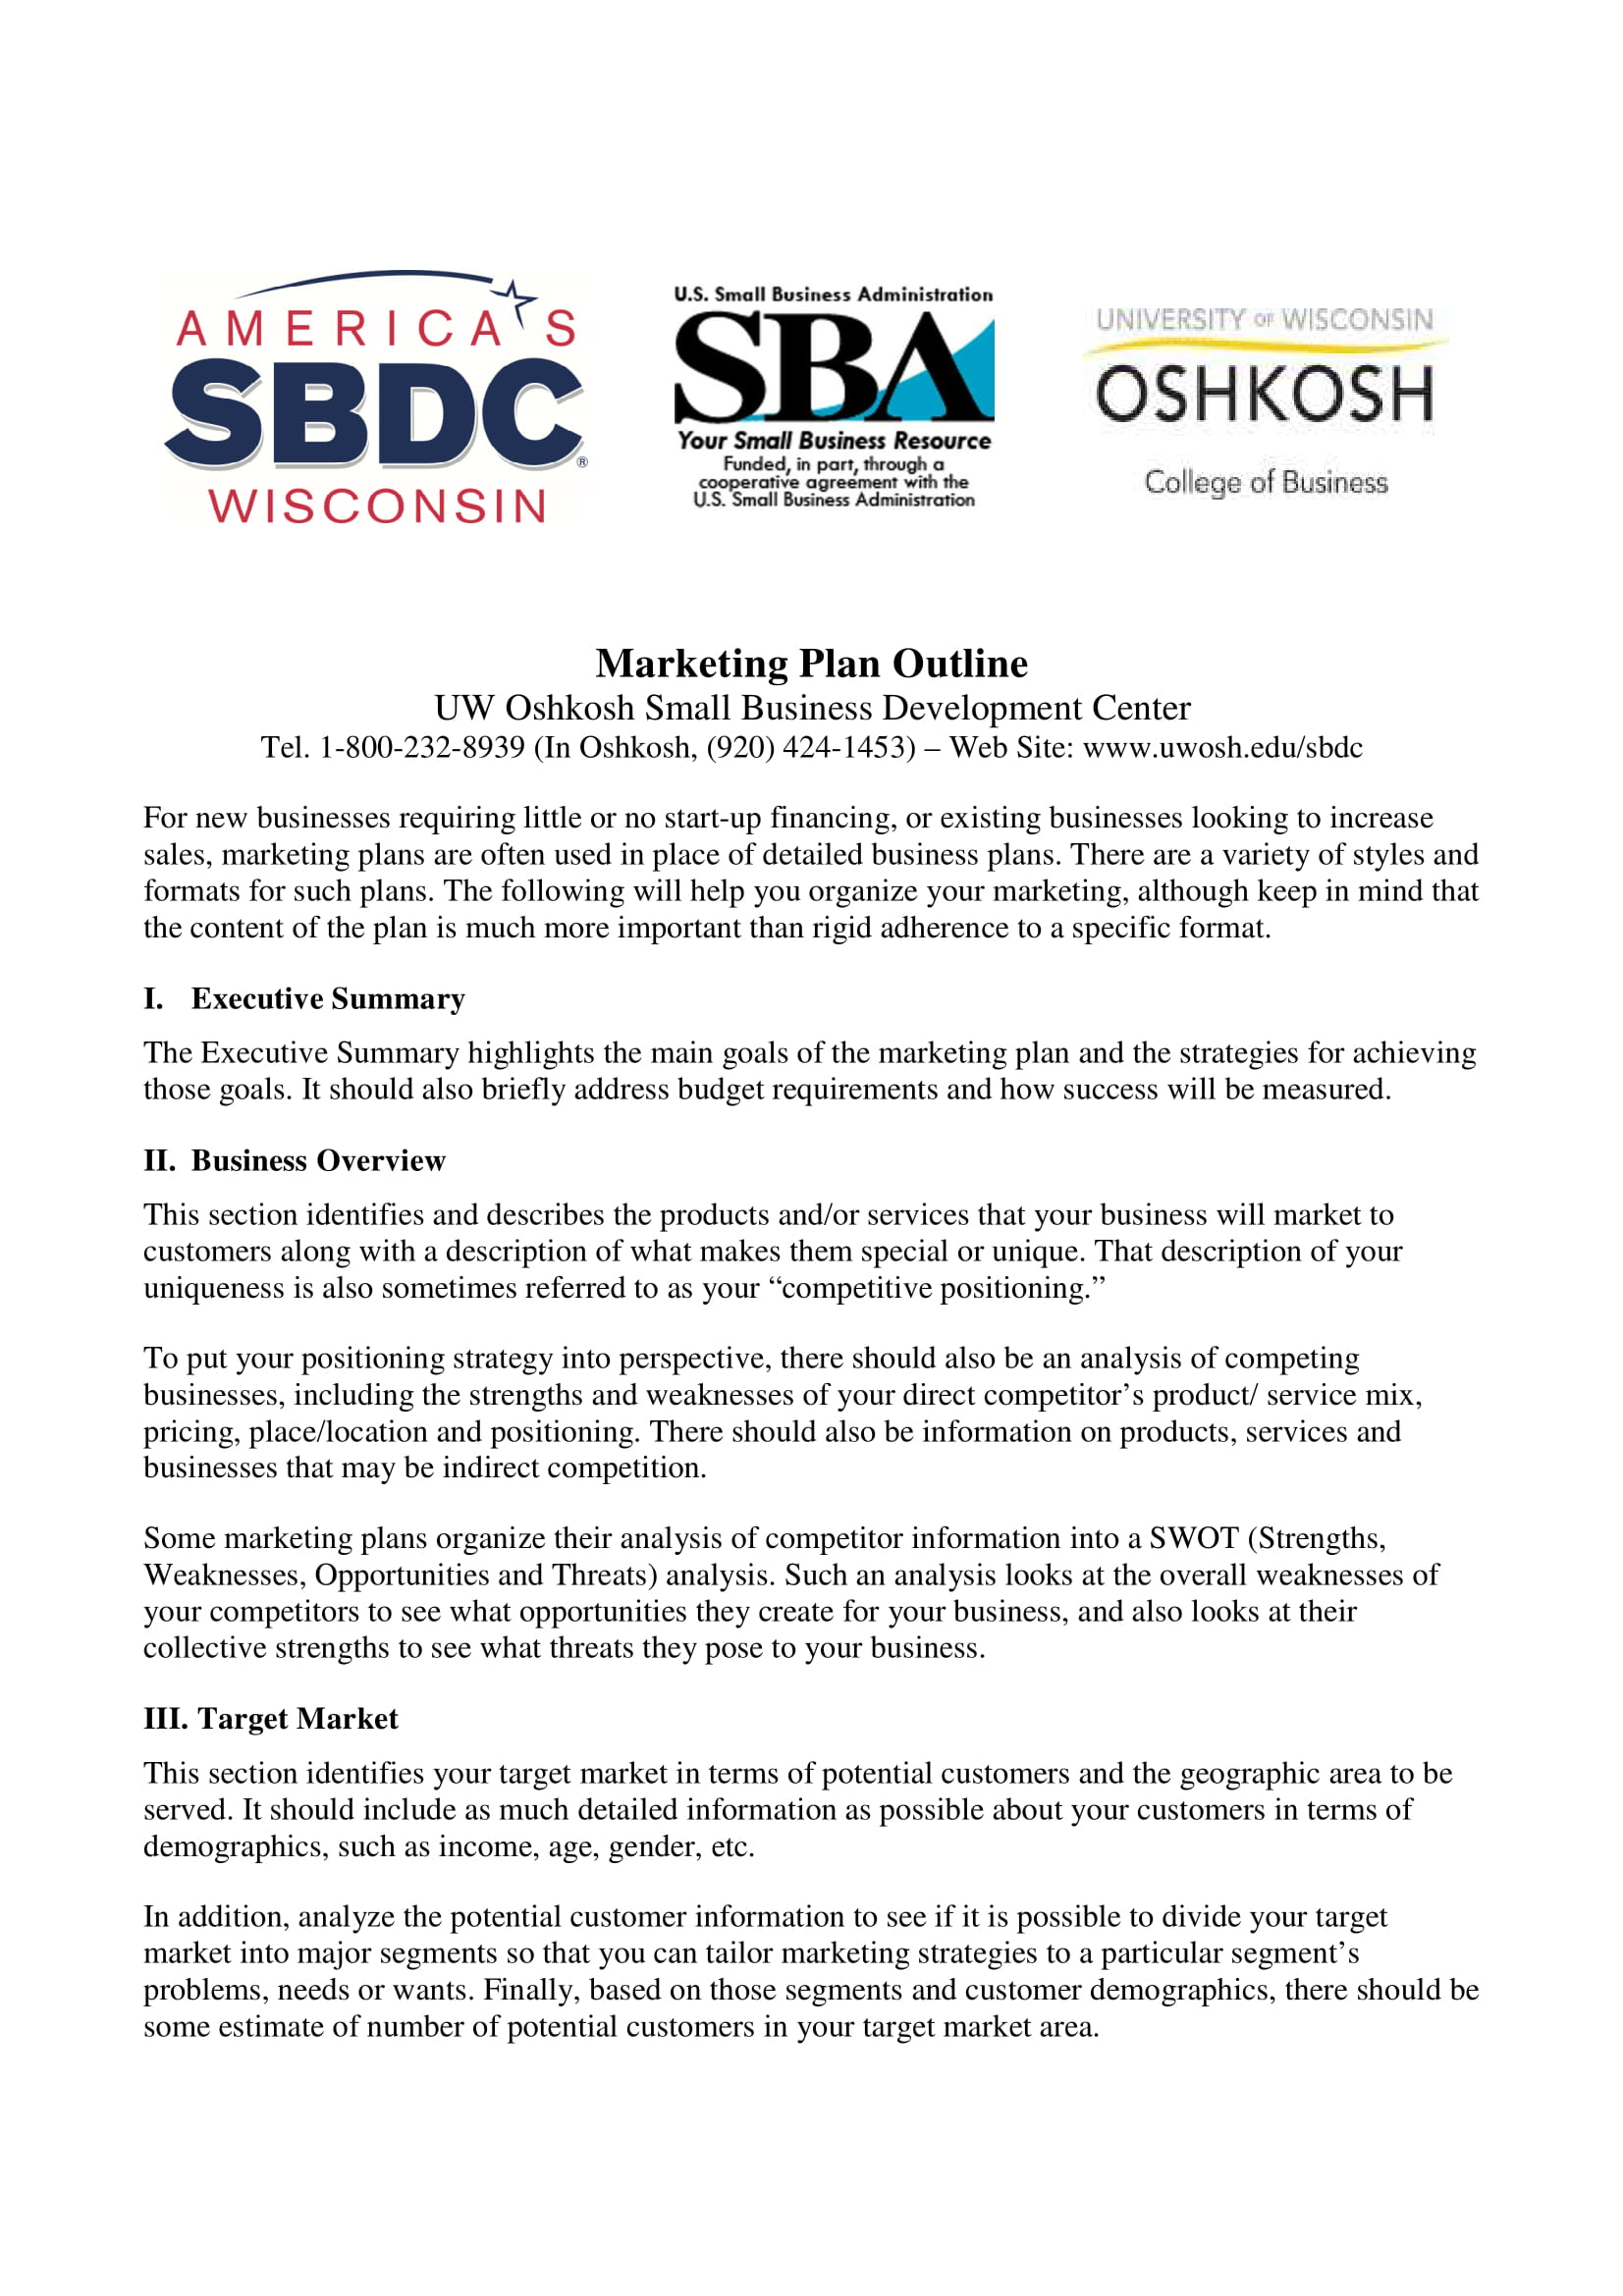 strategic marketing plan outline template example 1